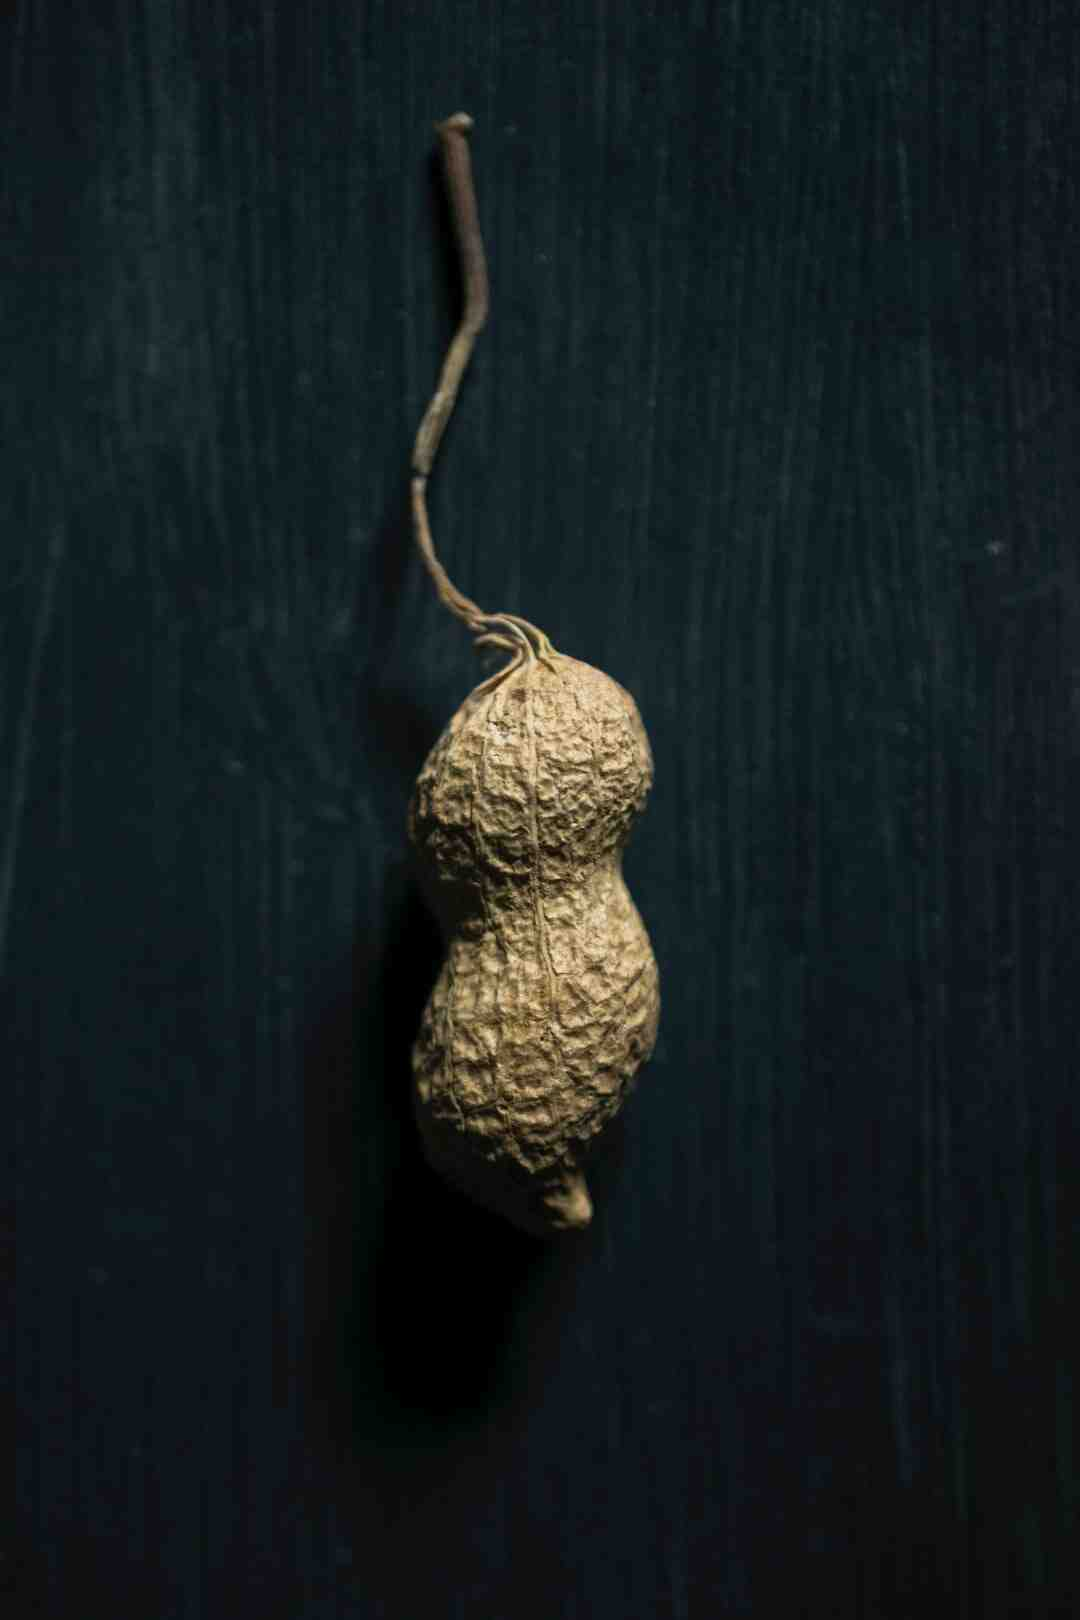 Why raw peanuts are bad for you?